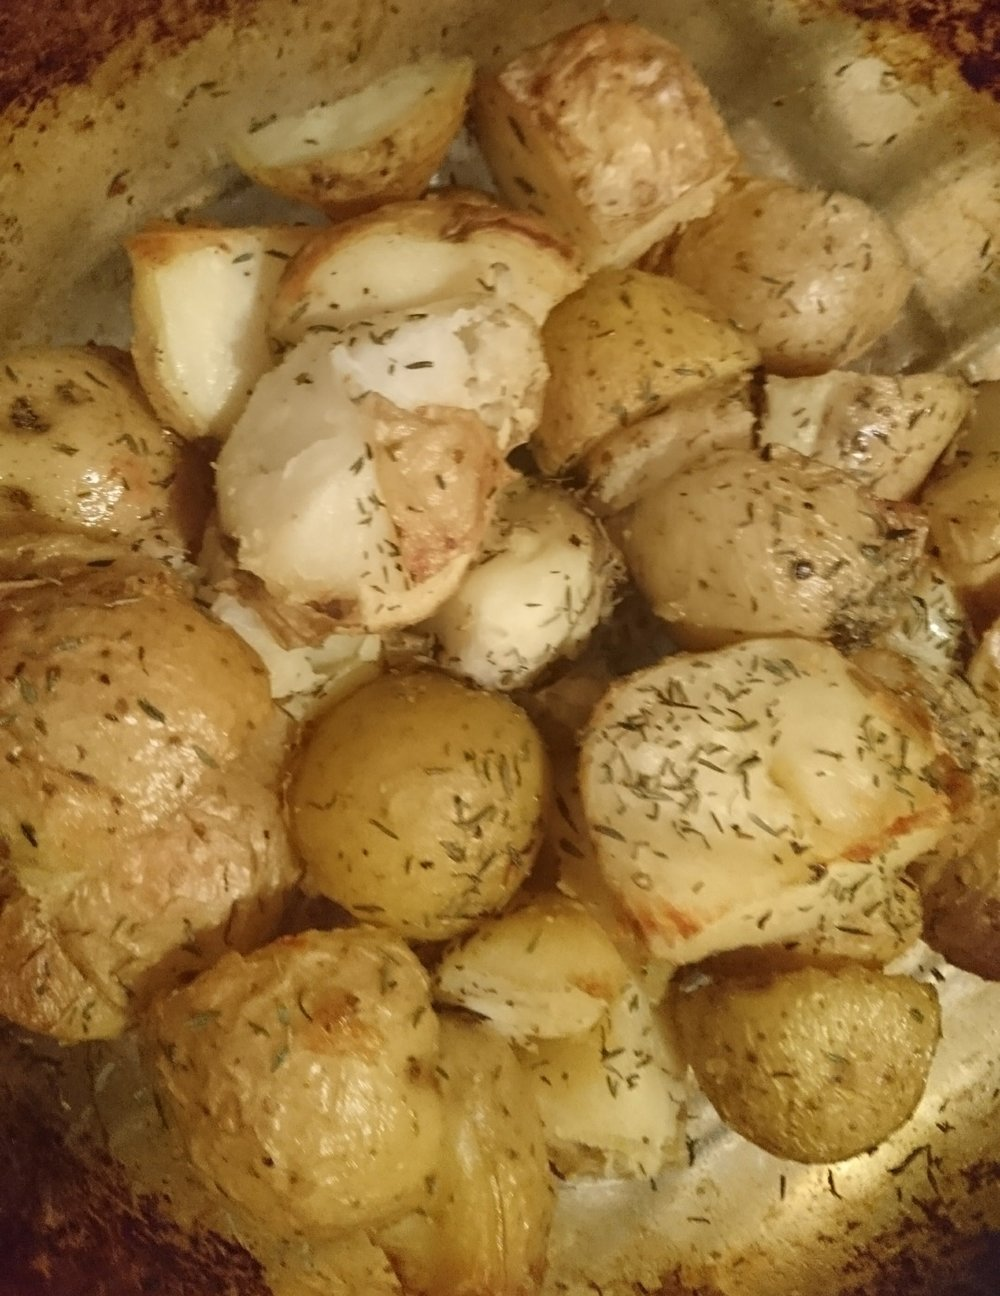 Prep time: 5 mins  Cook time: 70 mins Yield: 4 - 6 servings  Ingredients:  8 White potatoes - medium  2 tbsp Fry Light olive oil spray (or any other low cal oil spray of your choice)  1 tsp Garlic powder  1 tsp Thyme  1 tsp Sea salt  Ground Black pepper to taste    Method:  1. Bring a pot of water to boil. While it is coming to the boil, wash and cut potatoes into 4  2. Place them into the pot and boil for 10 minutes - this will help make these roasties fluffy  3. While potatoes are boiling, preheat oven to 200C and place an oven dish in the oven to heat up  4. Drain the potatoes thoroughly and place into the preheated oven dish  5. Add the oil spray, salt, pepper and thyme. Then stir gently to coat the potatoes  6. Cook for 60 minutes or until crispy, serve and enjoy